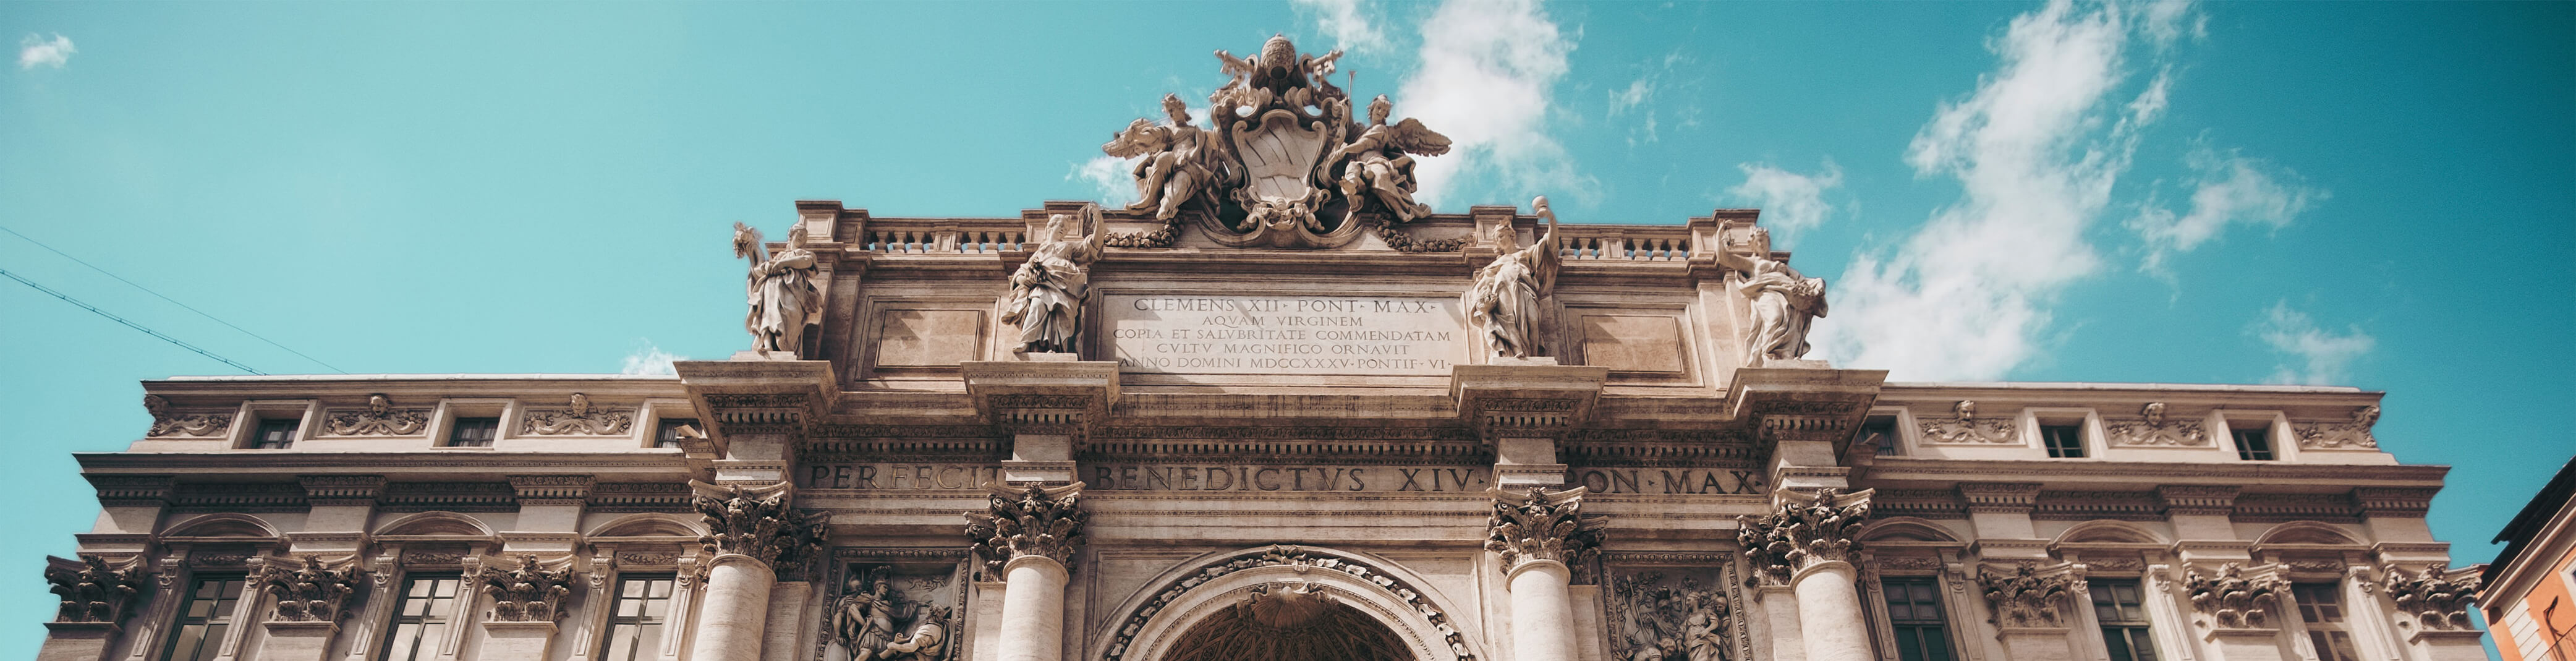 Online Training Courses In Rome